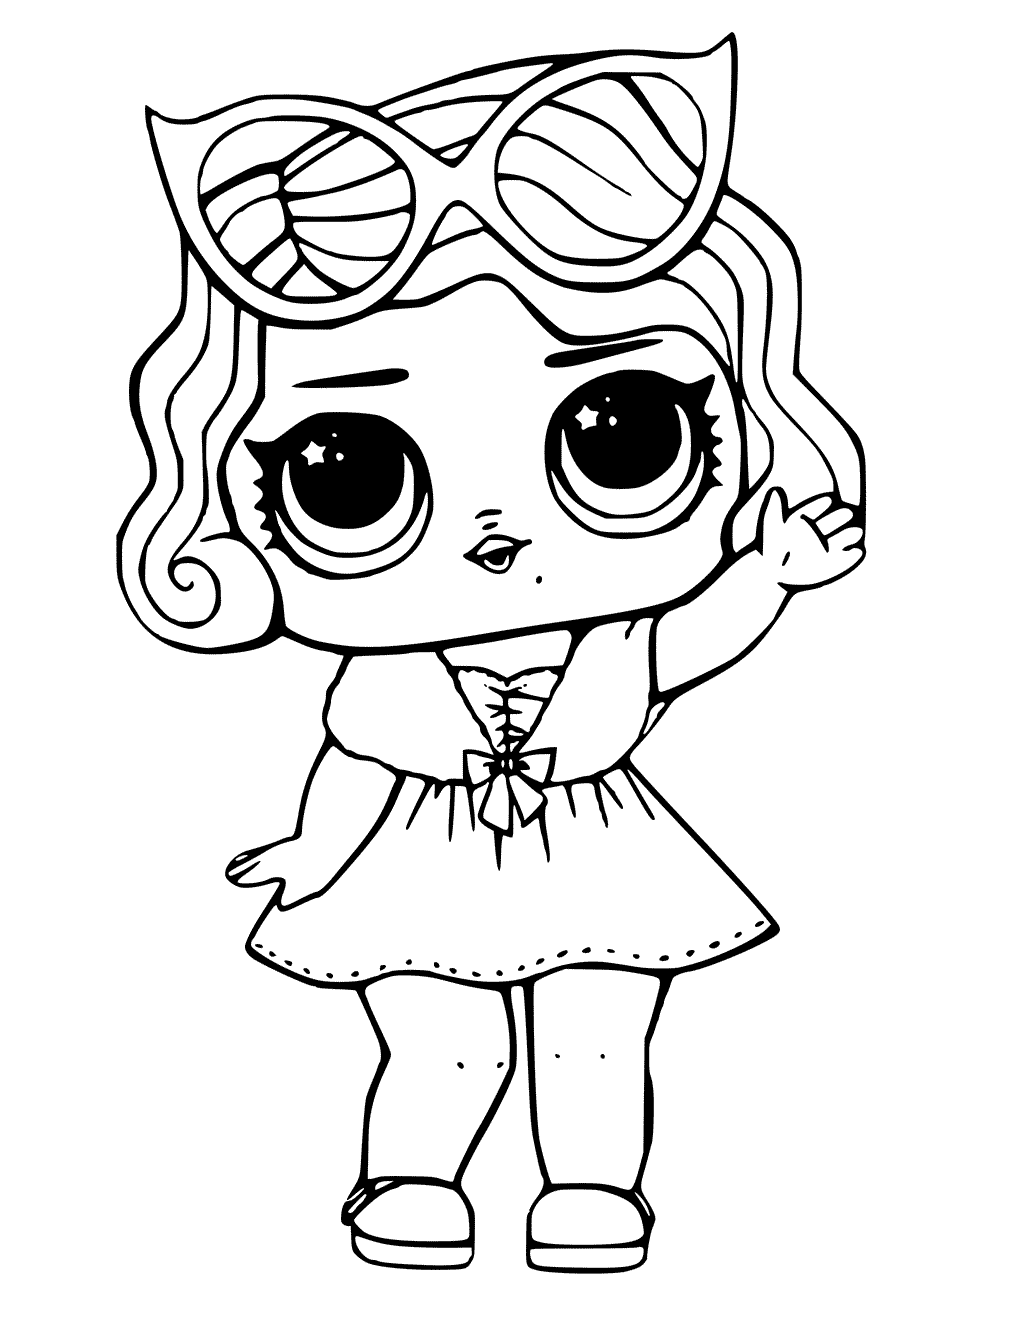 Leading Baby LOL Dolls Coloring Pages